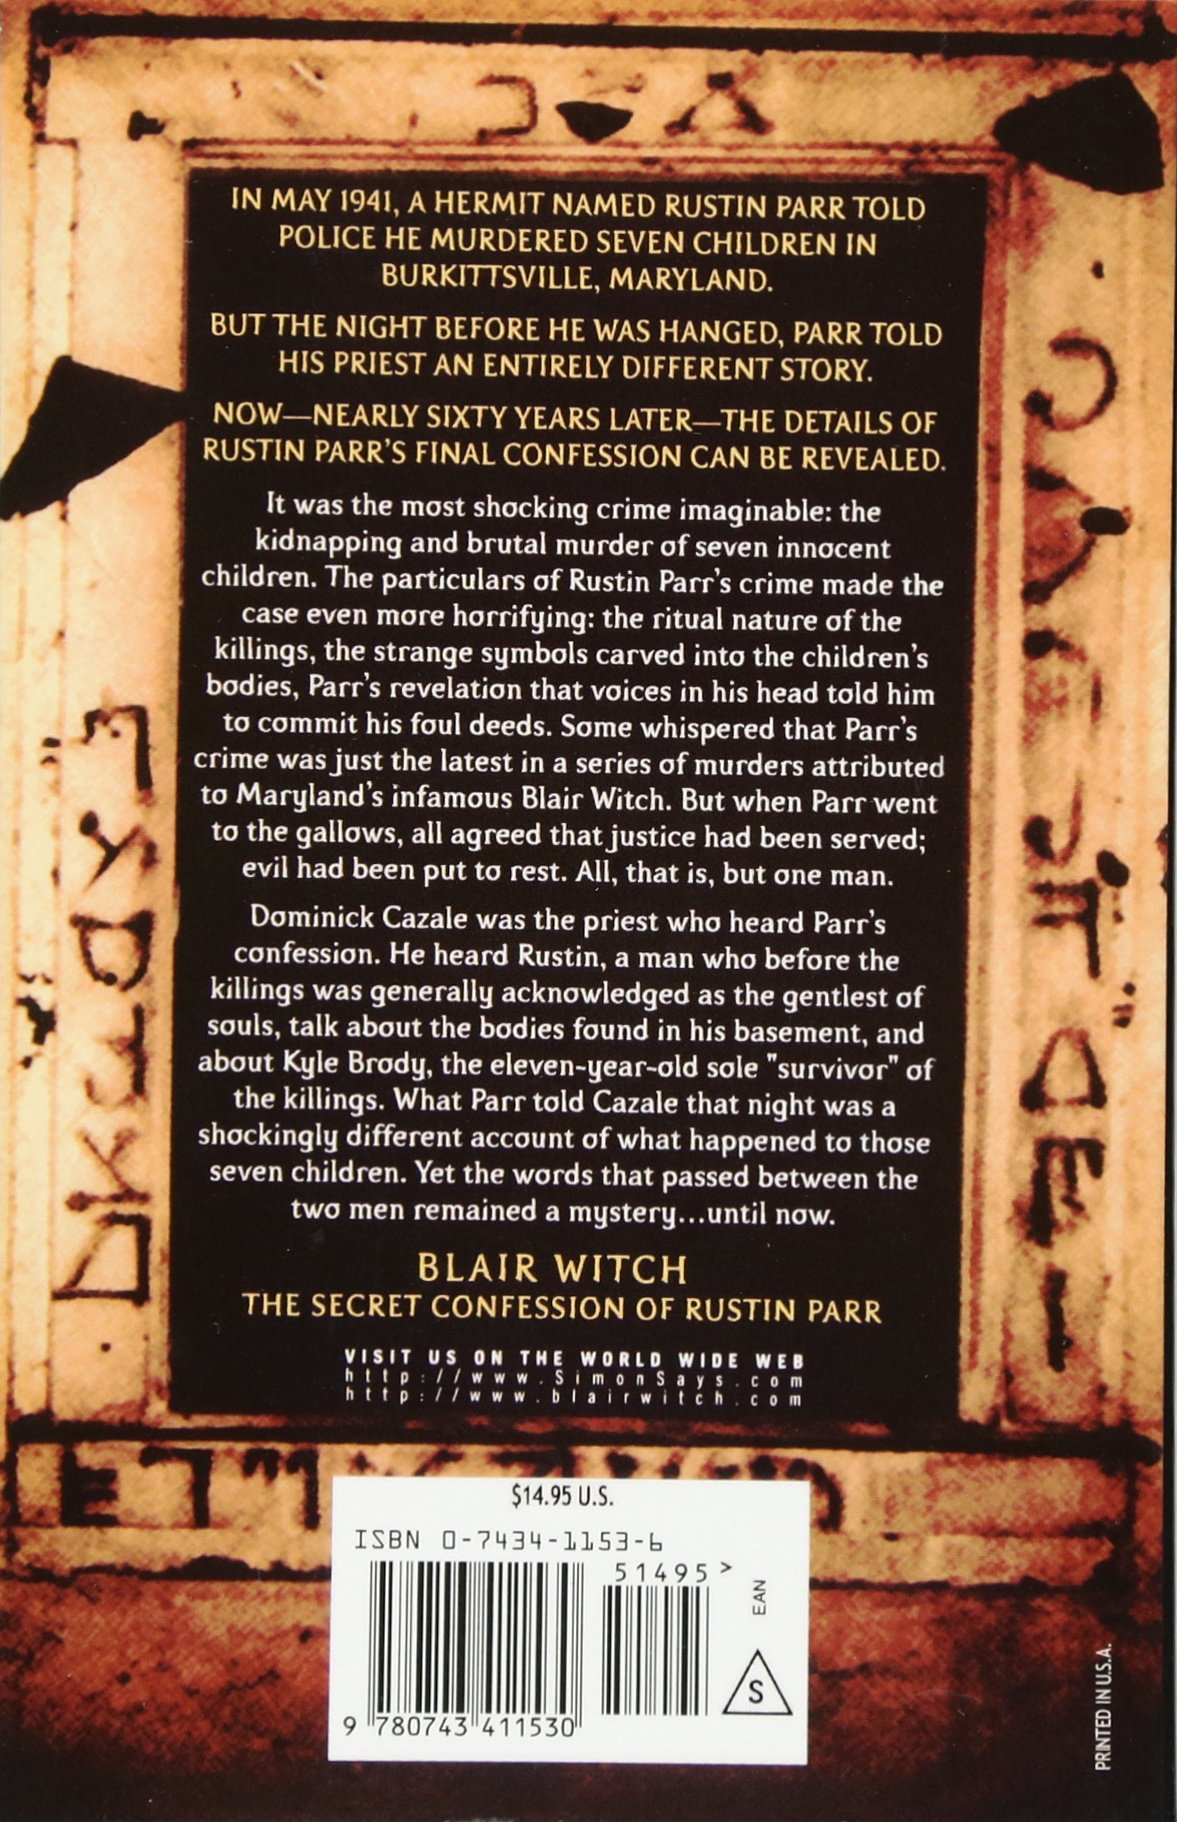 Blair Witch The Secret Confession of Rustin